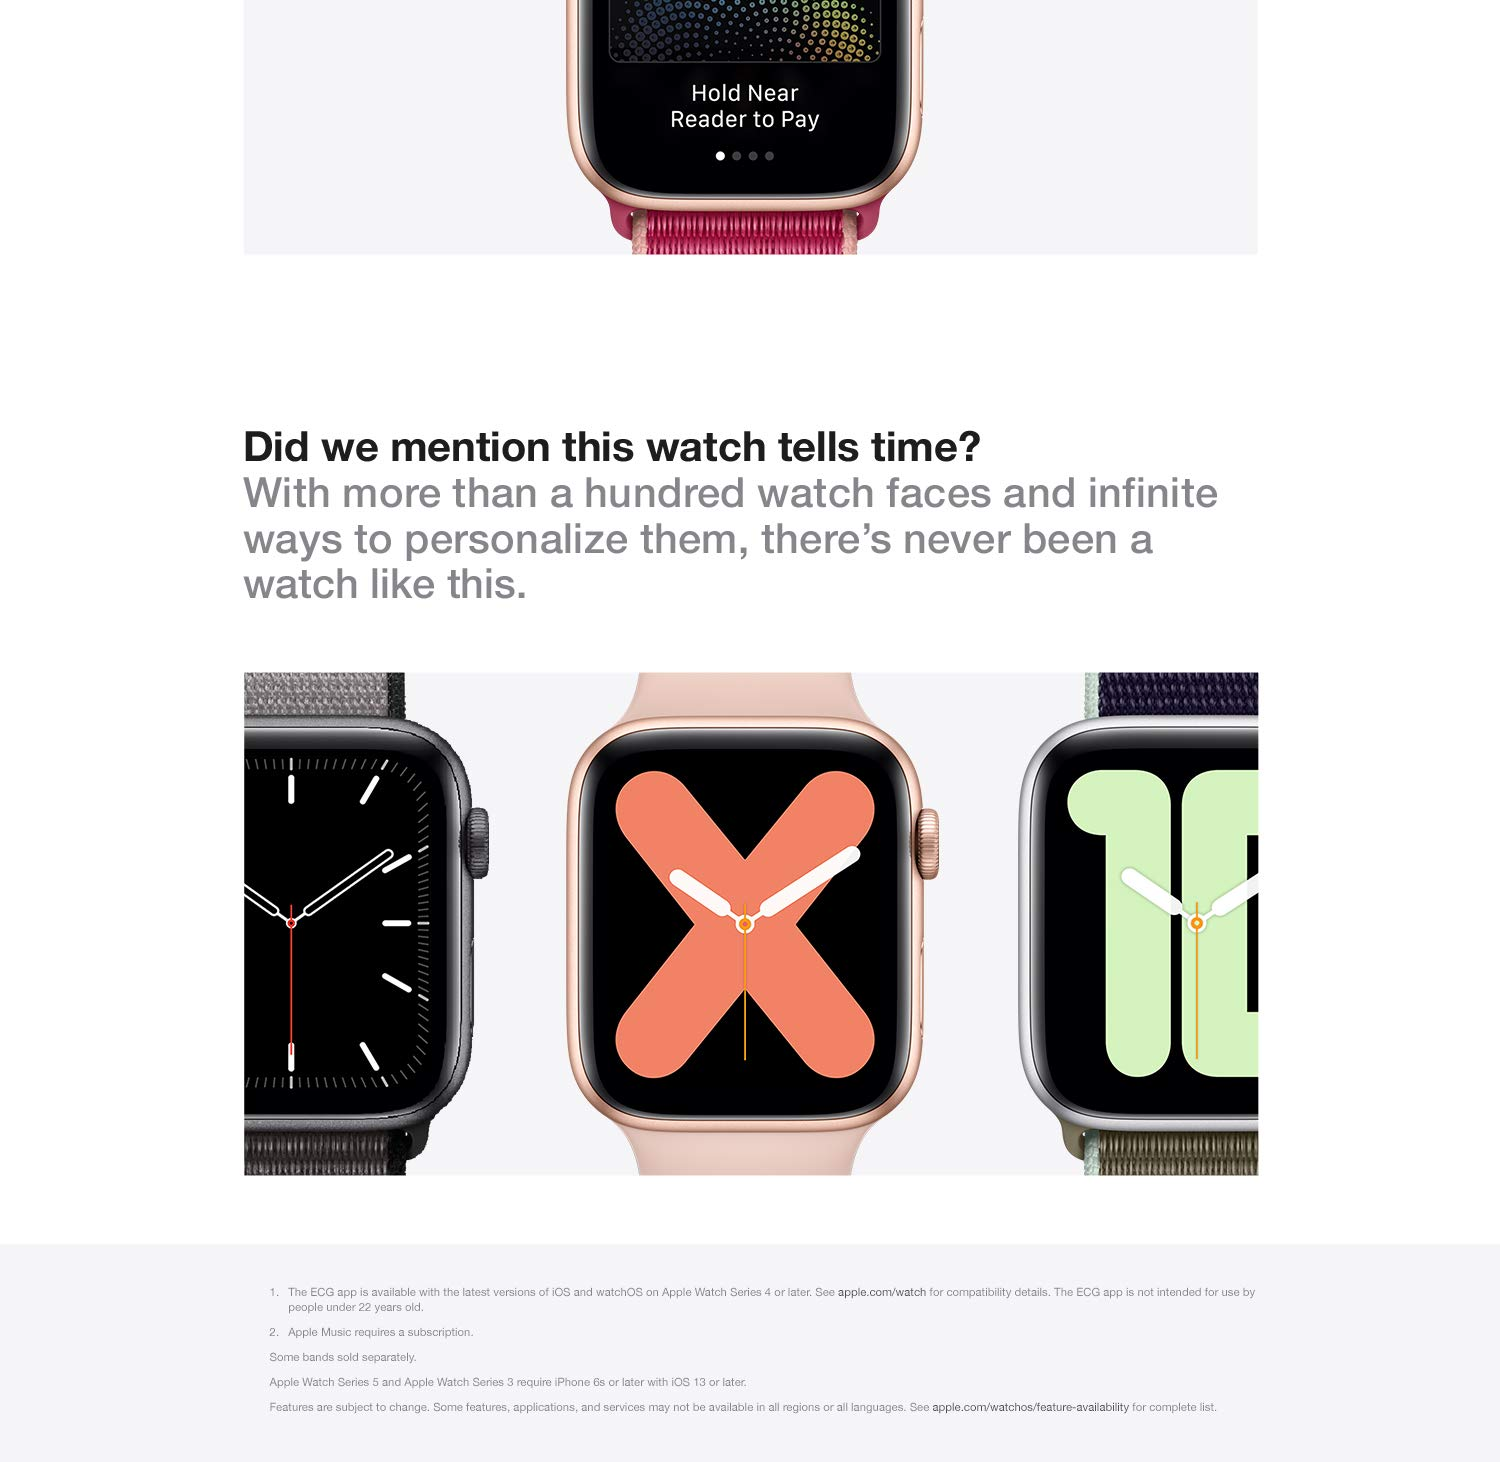 Did we mention this watch tells time? With more than a hundred watch faces and infinite ways to personalize them, there's never been a watch like this.